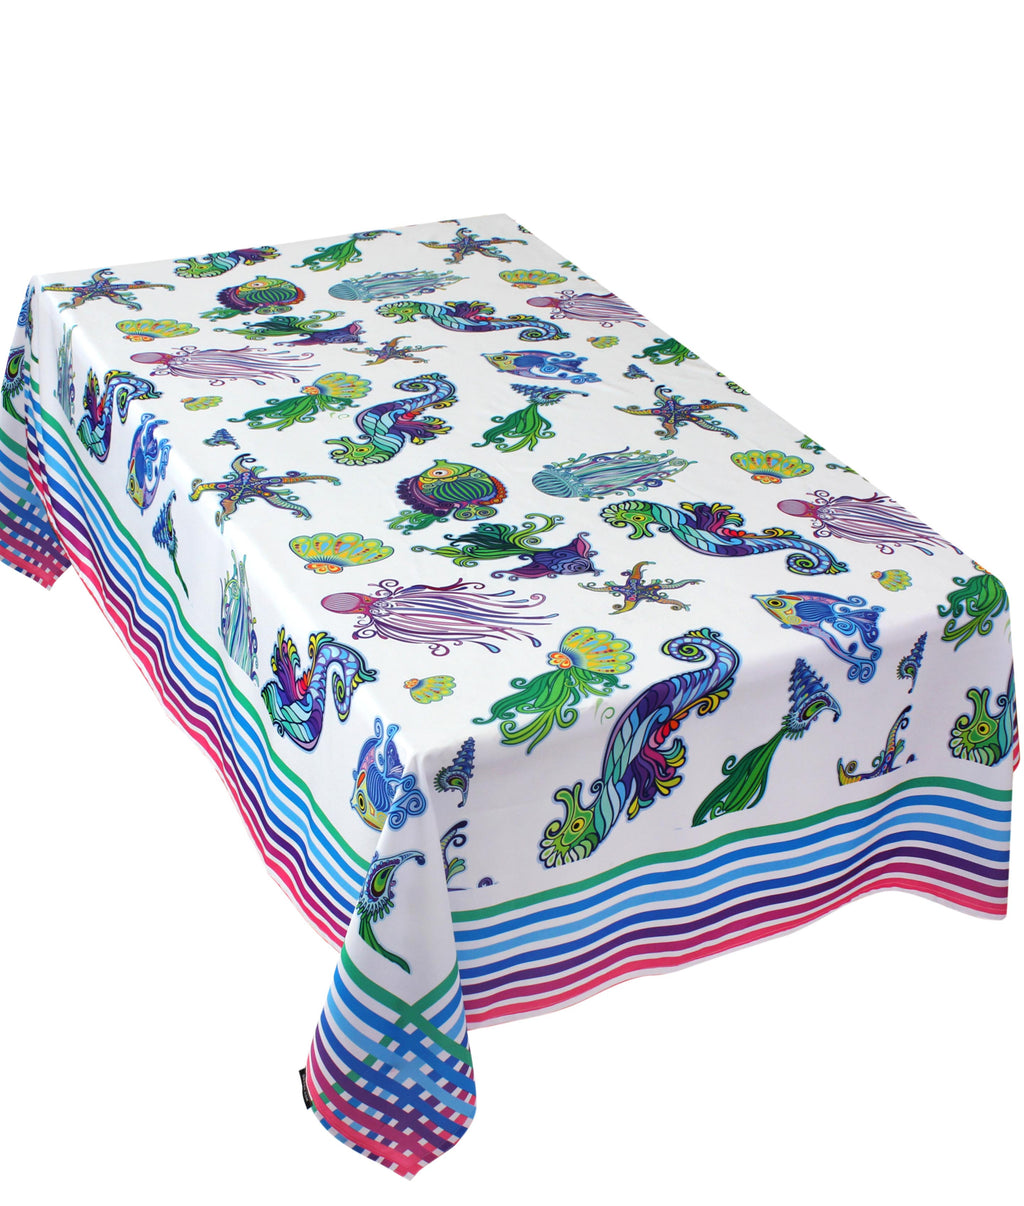 The Ocean Tribe Table Cover